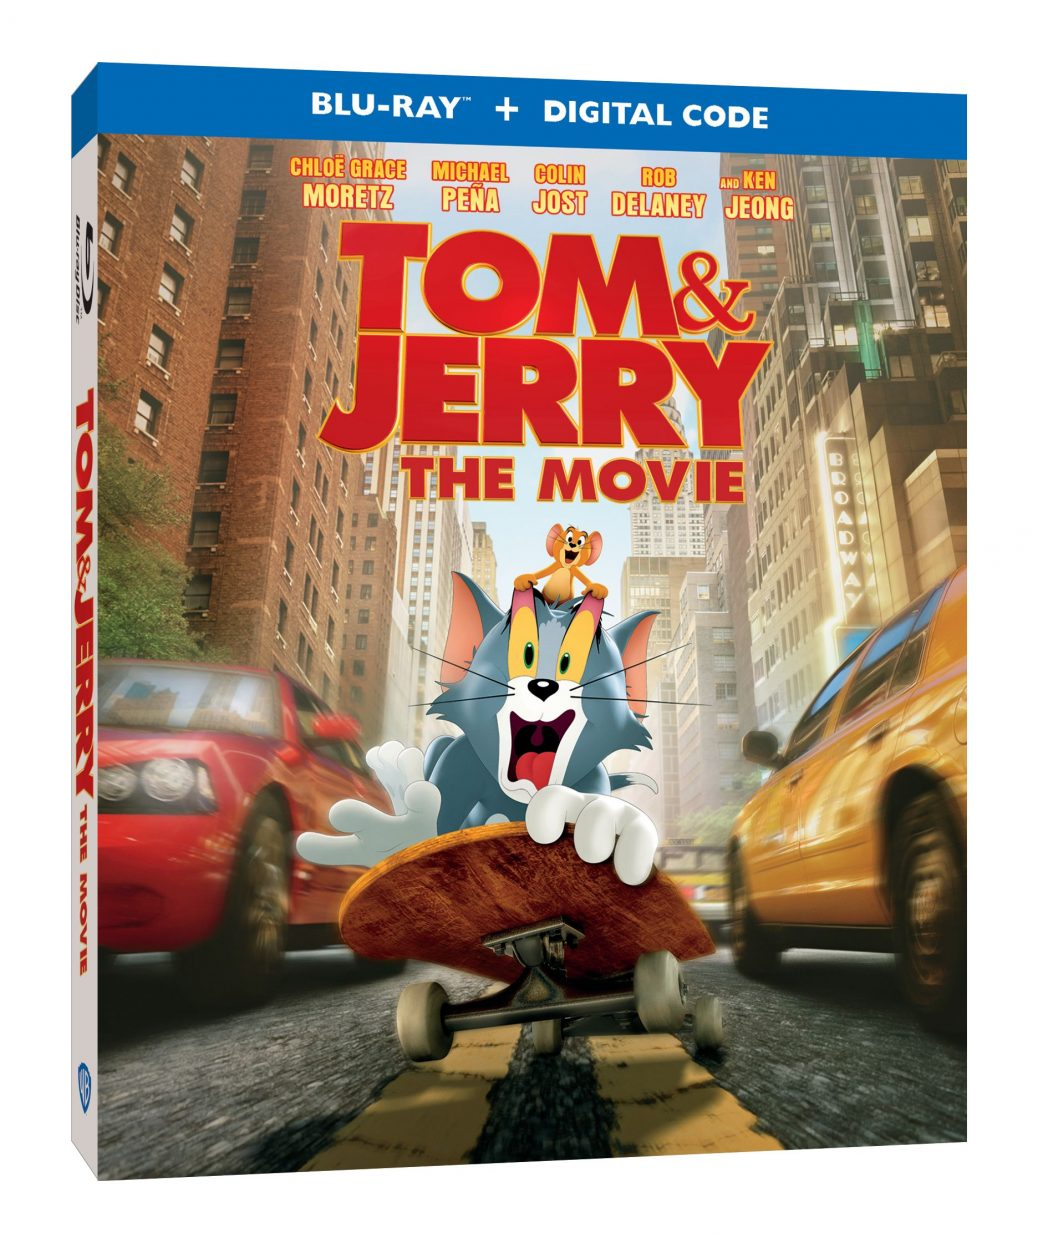 Tom +Jerry The Movie DVD/Blu-Ray Giveaway